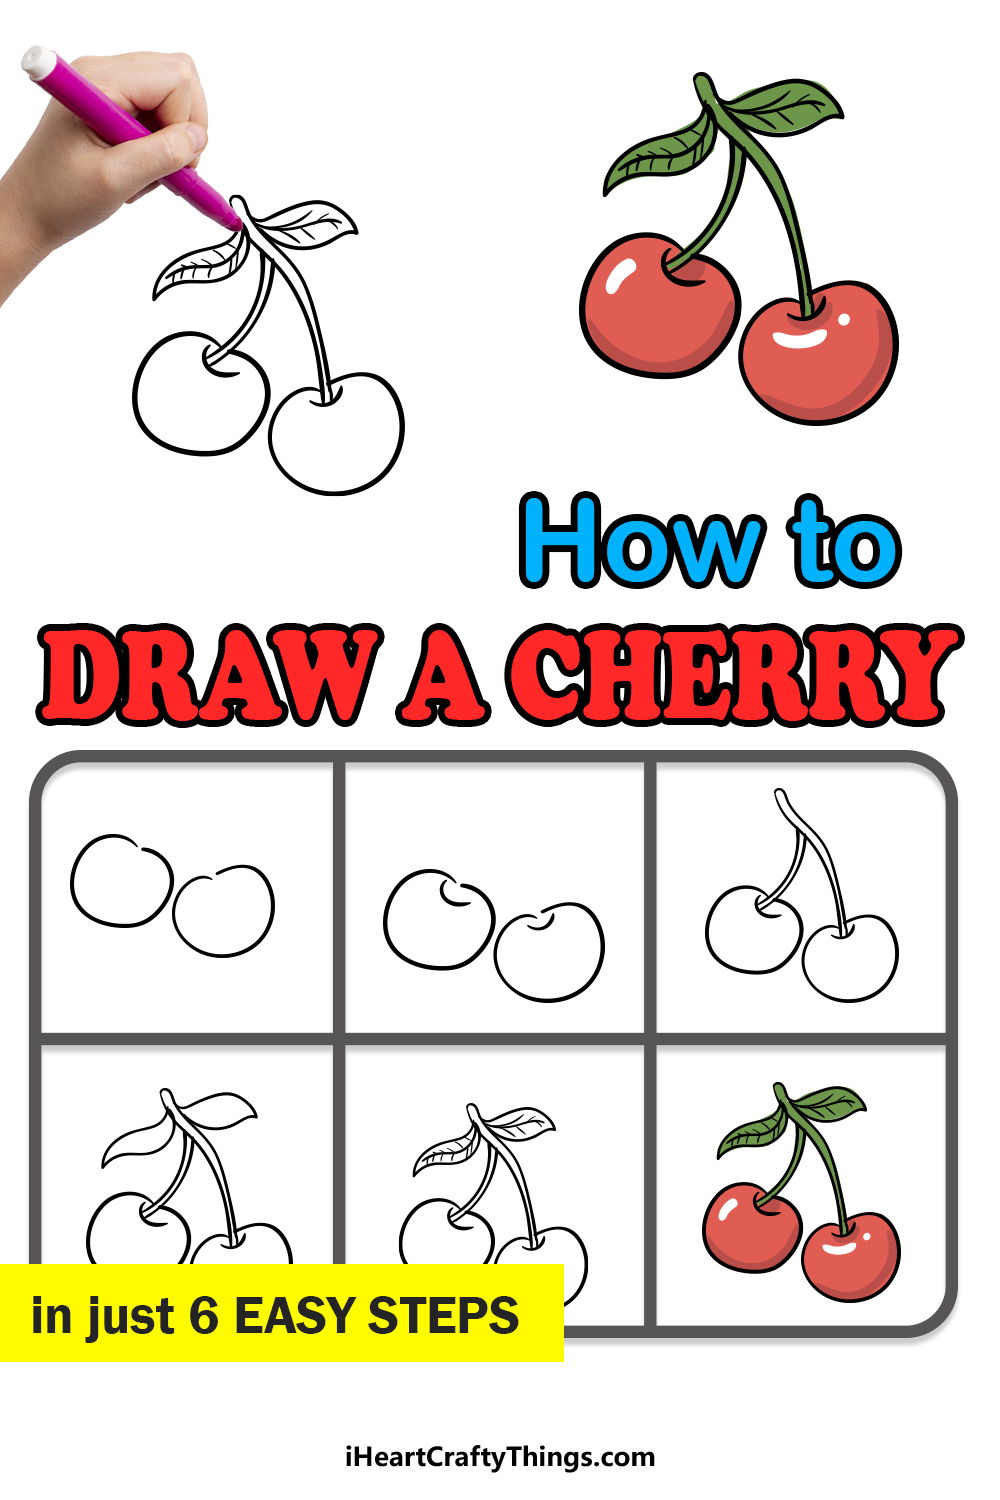 how to draw a cherry in 6 easy steps